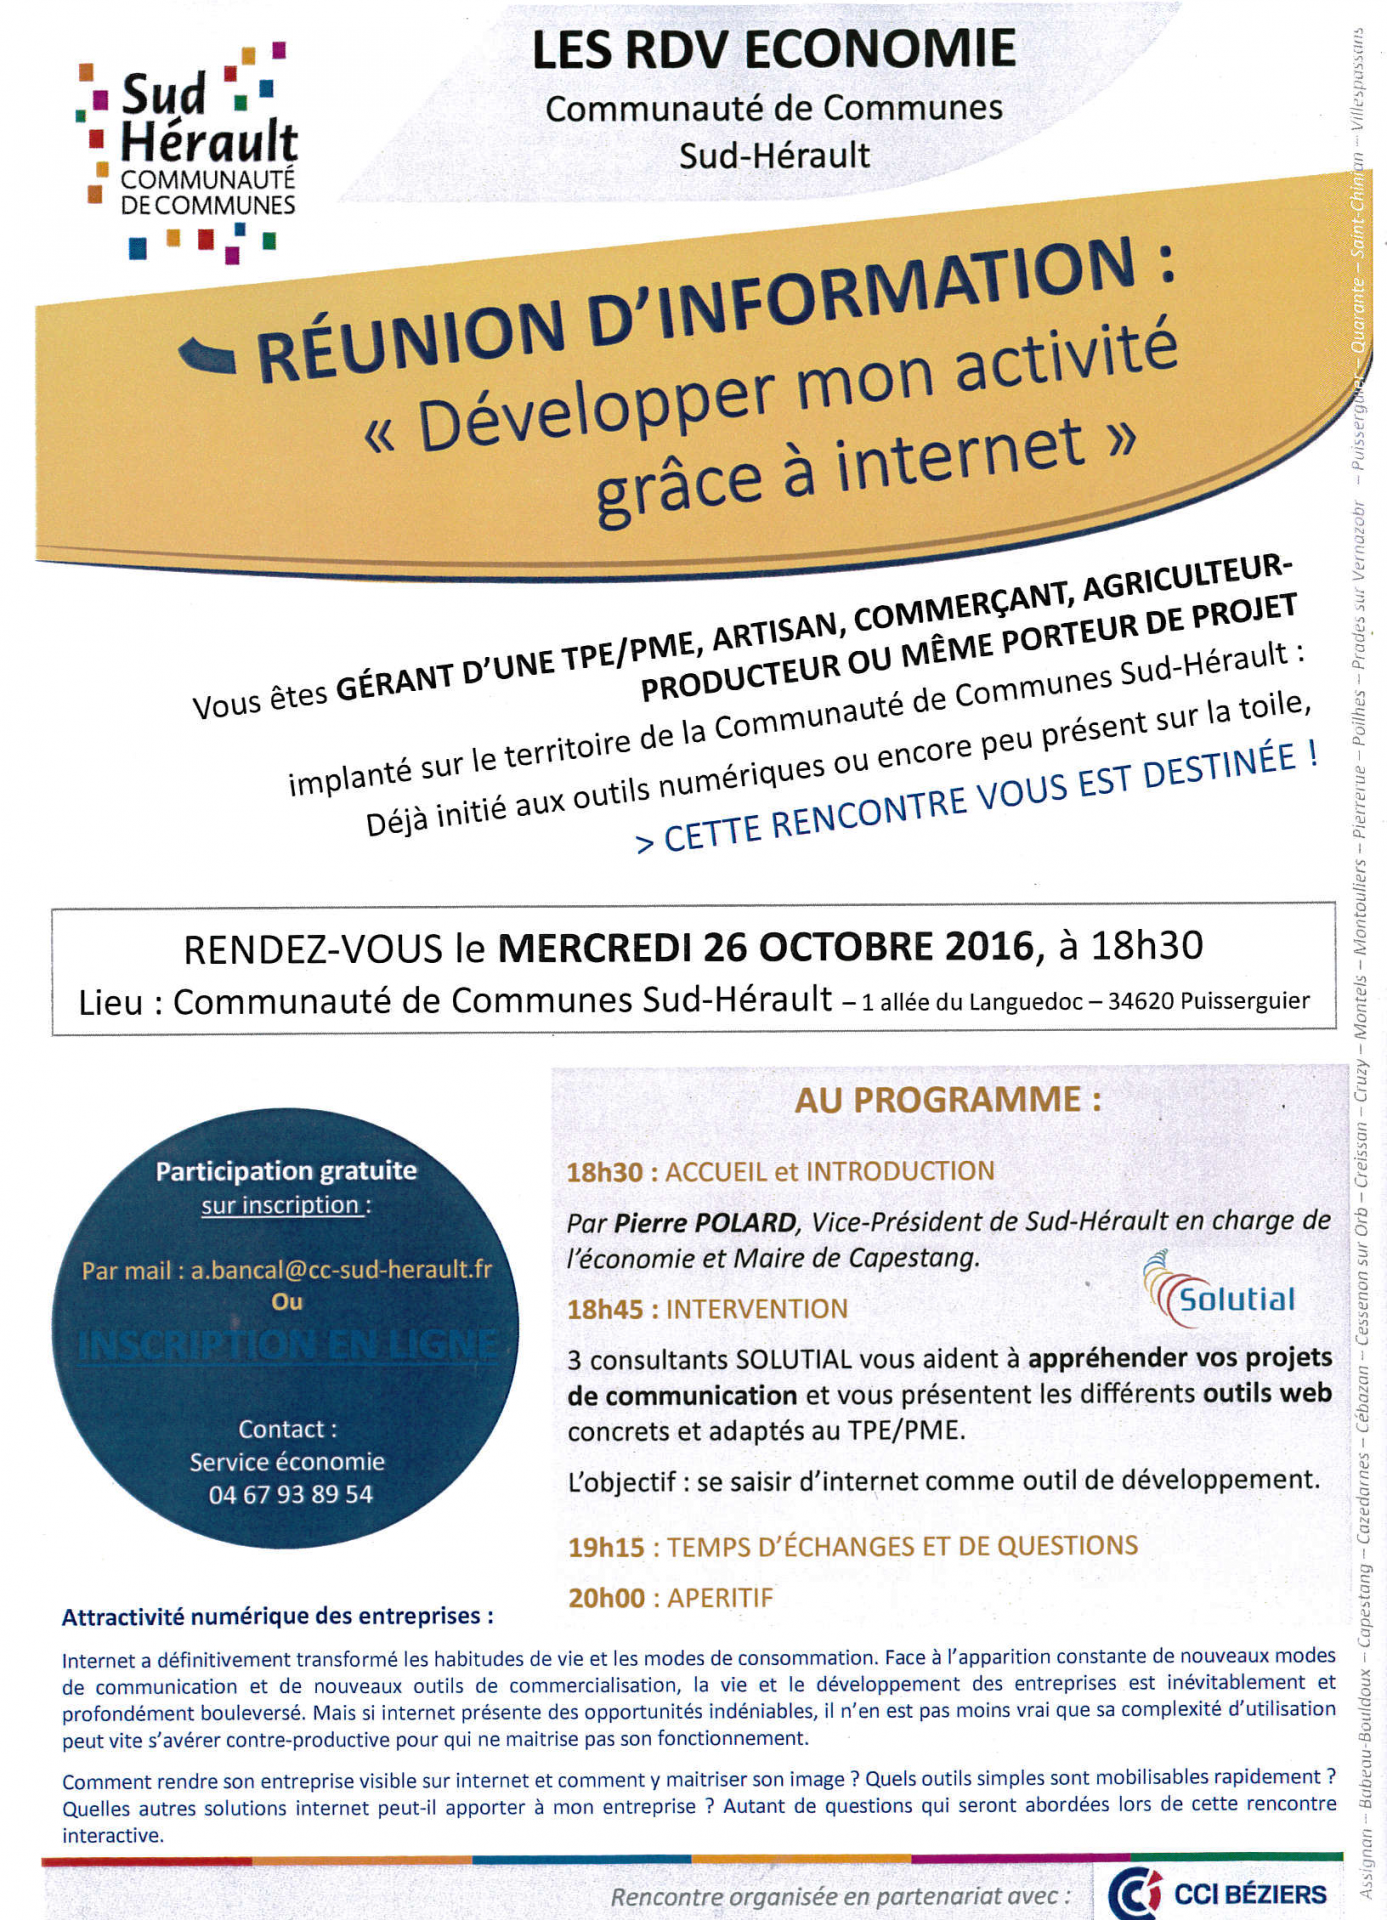 2016 10 26 reunion developper son activite grace a internet